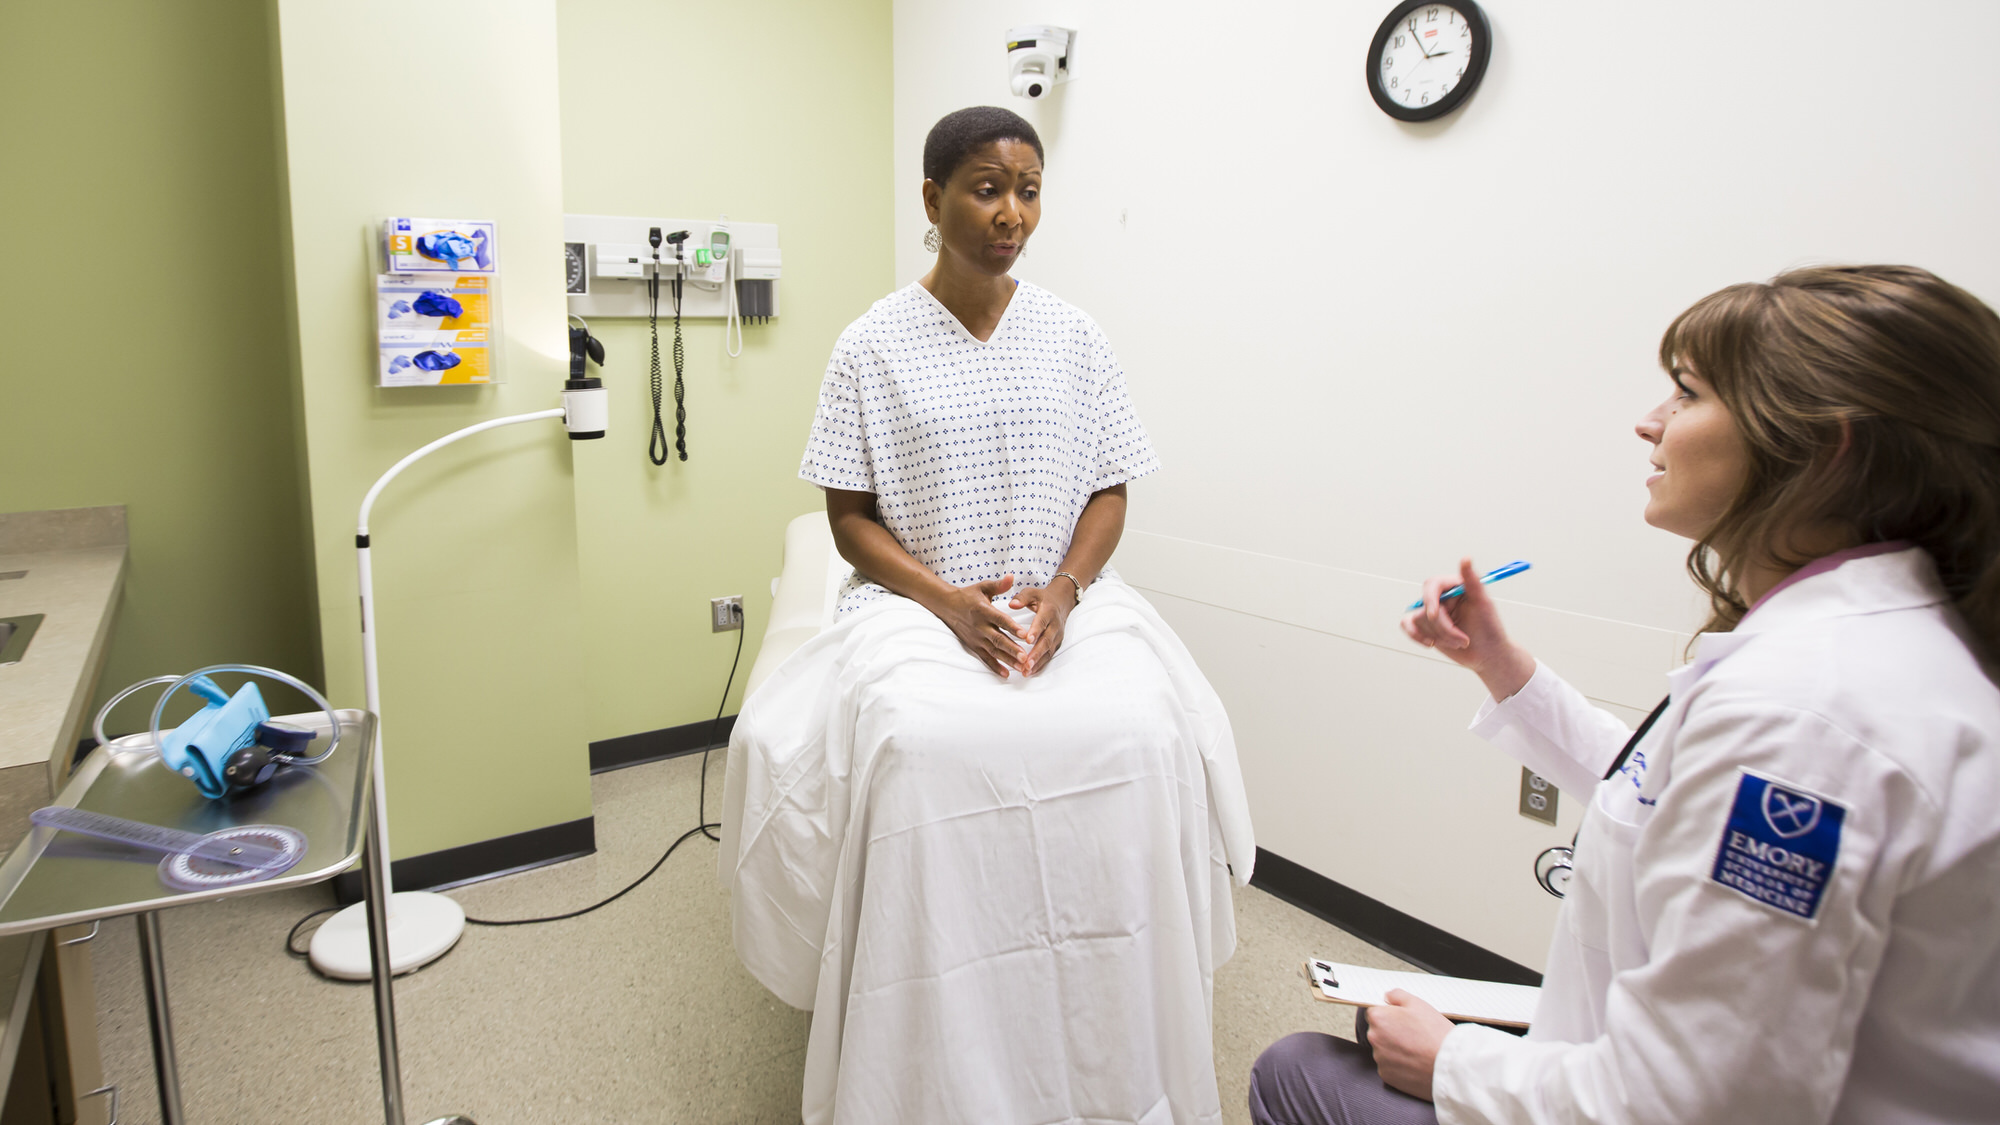 Student talking to a patient